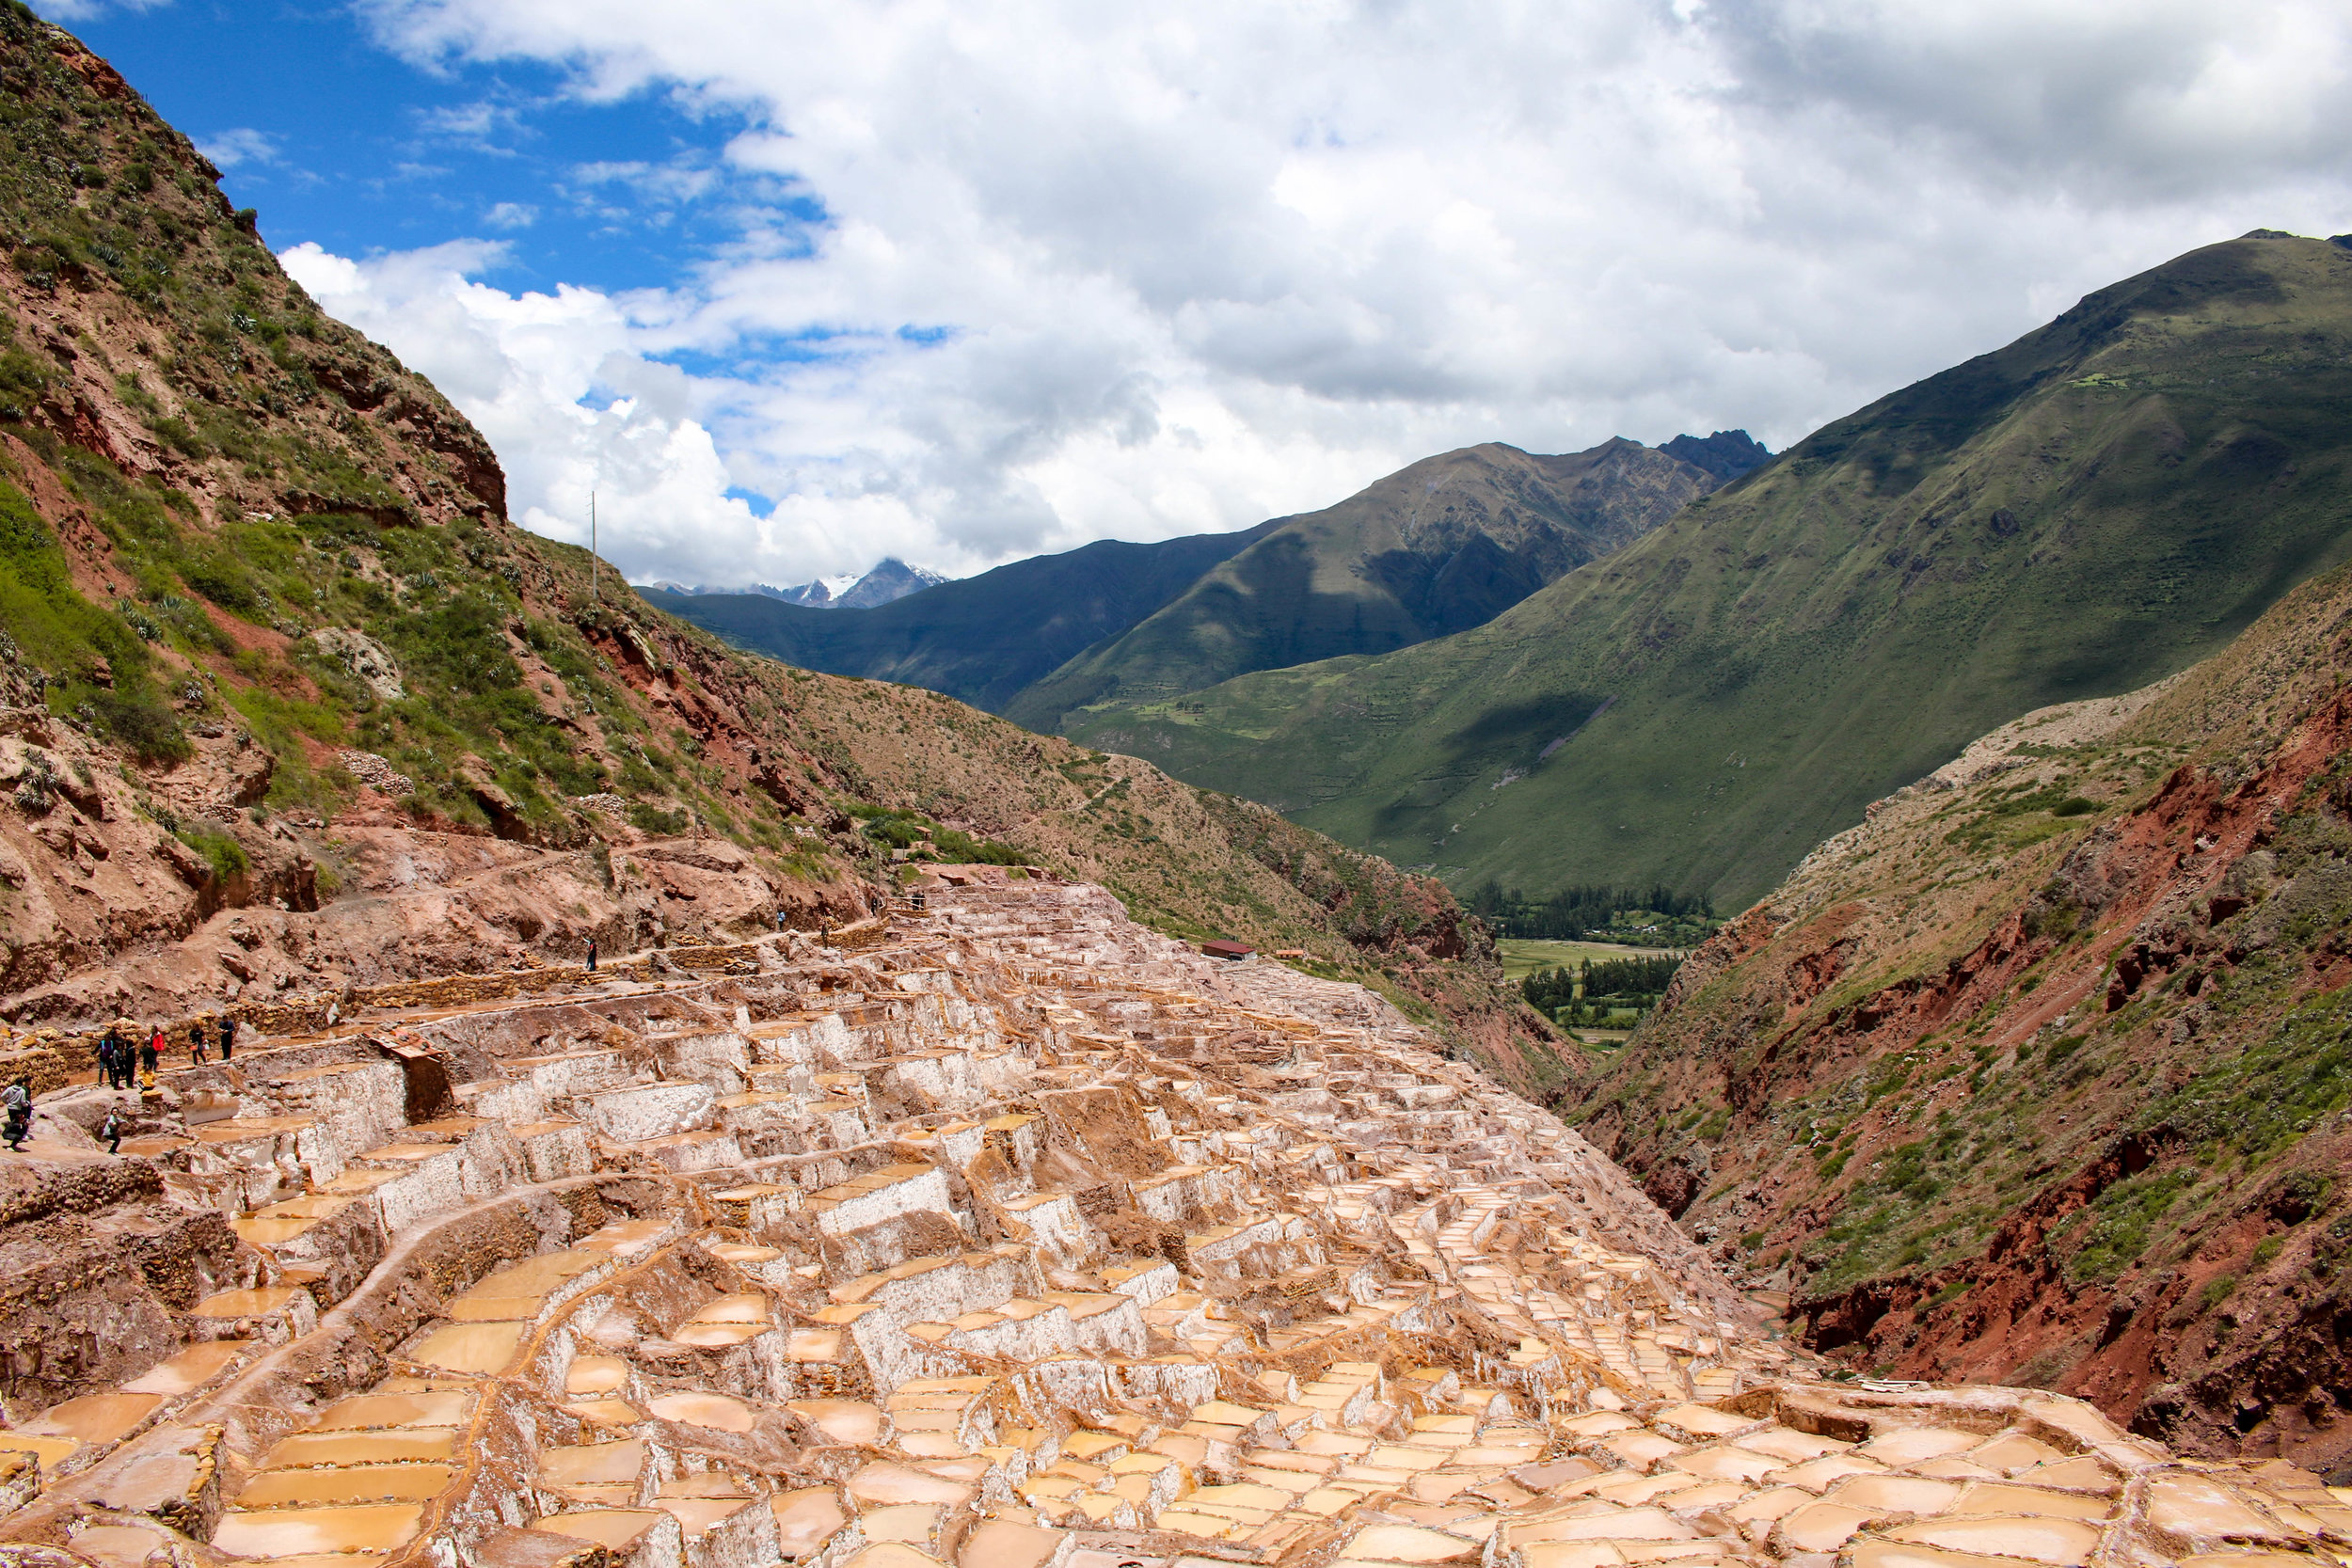 Salineras de Maras in the Sacred Valley, Peru